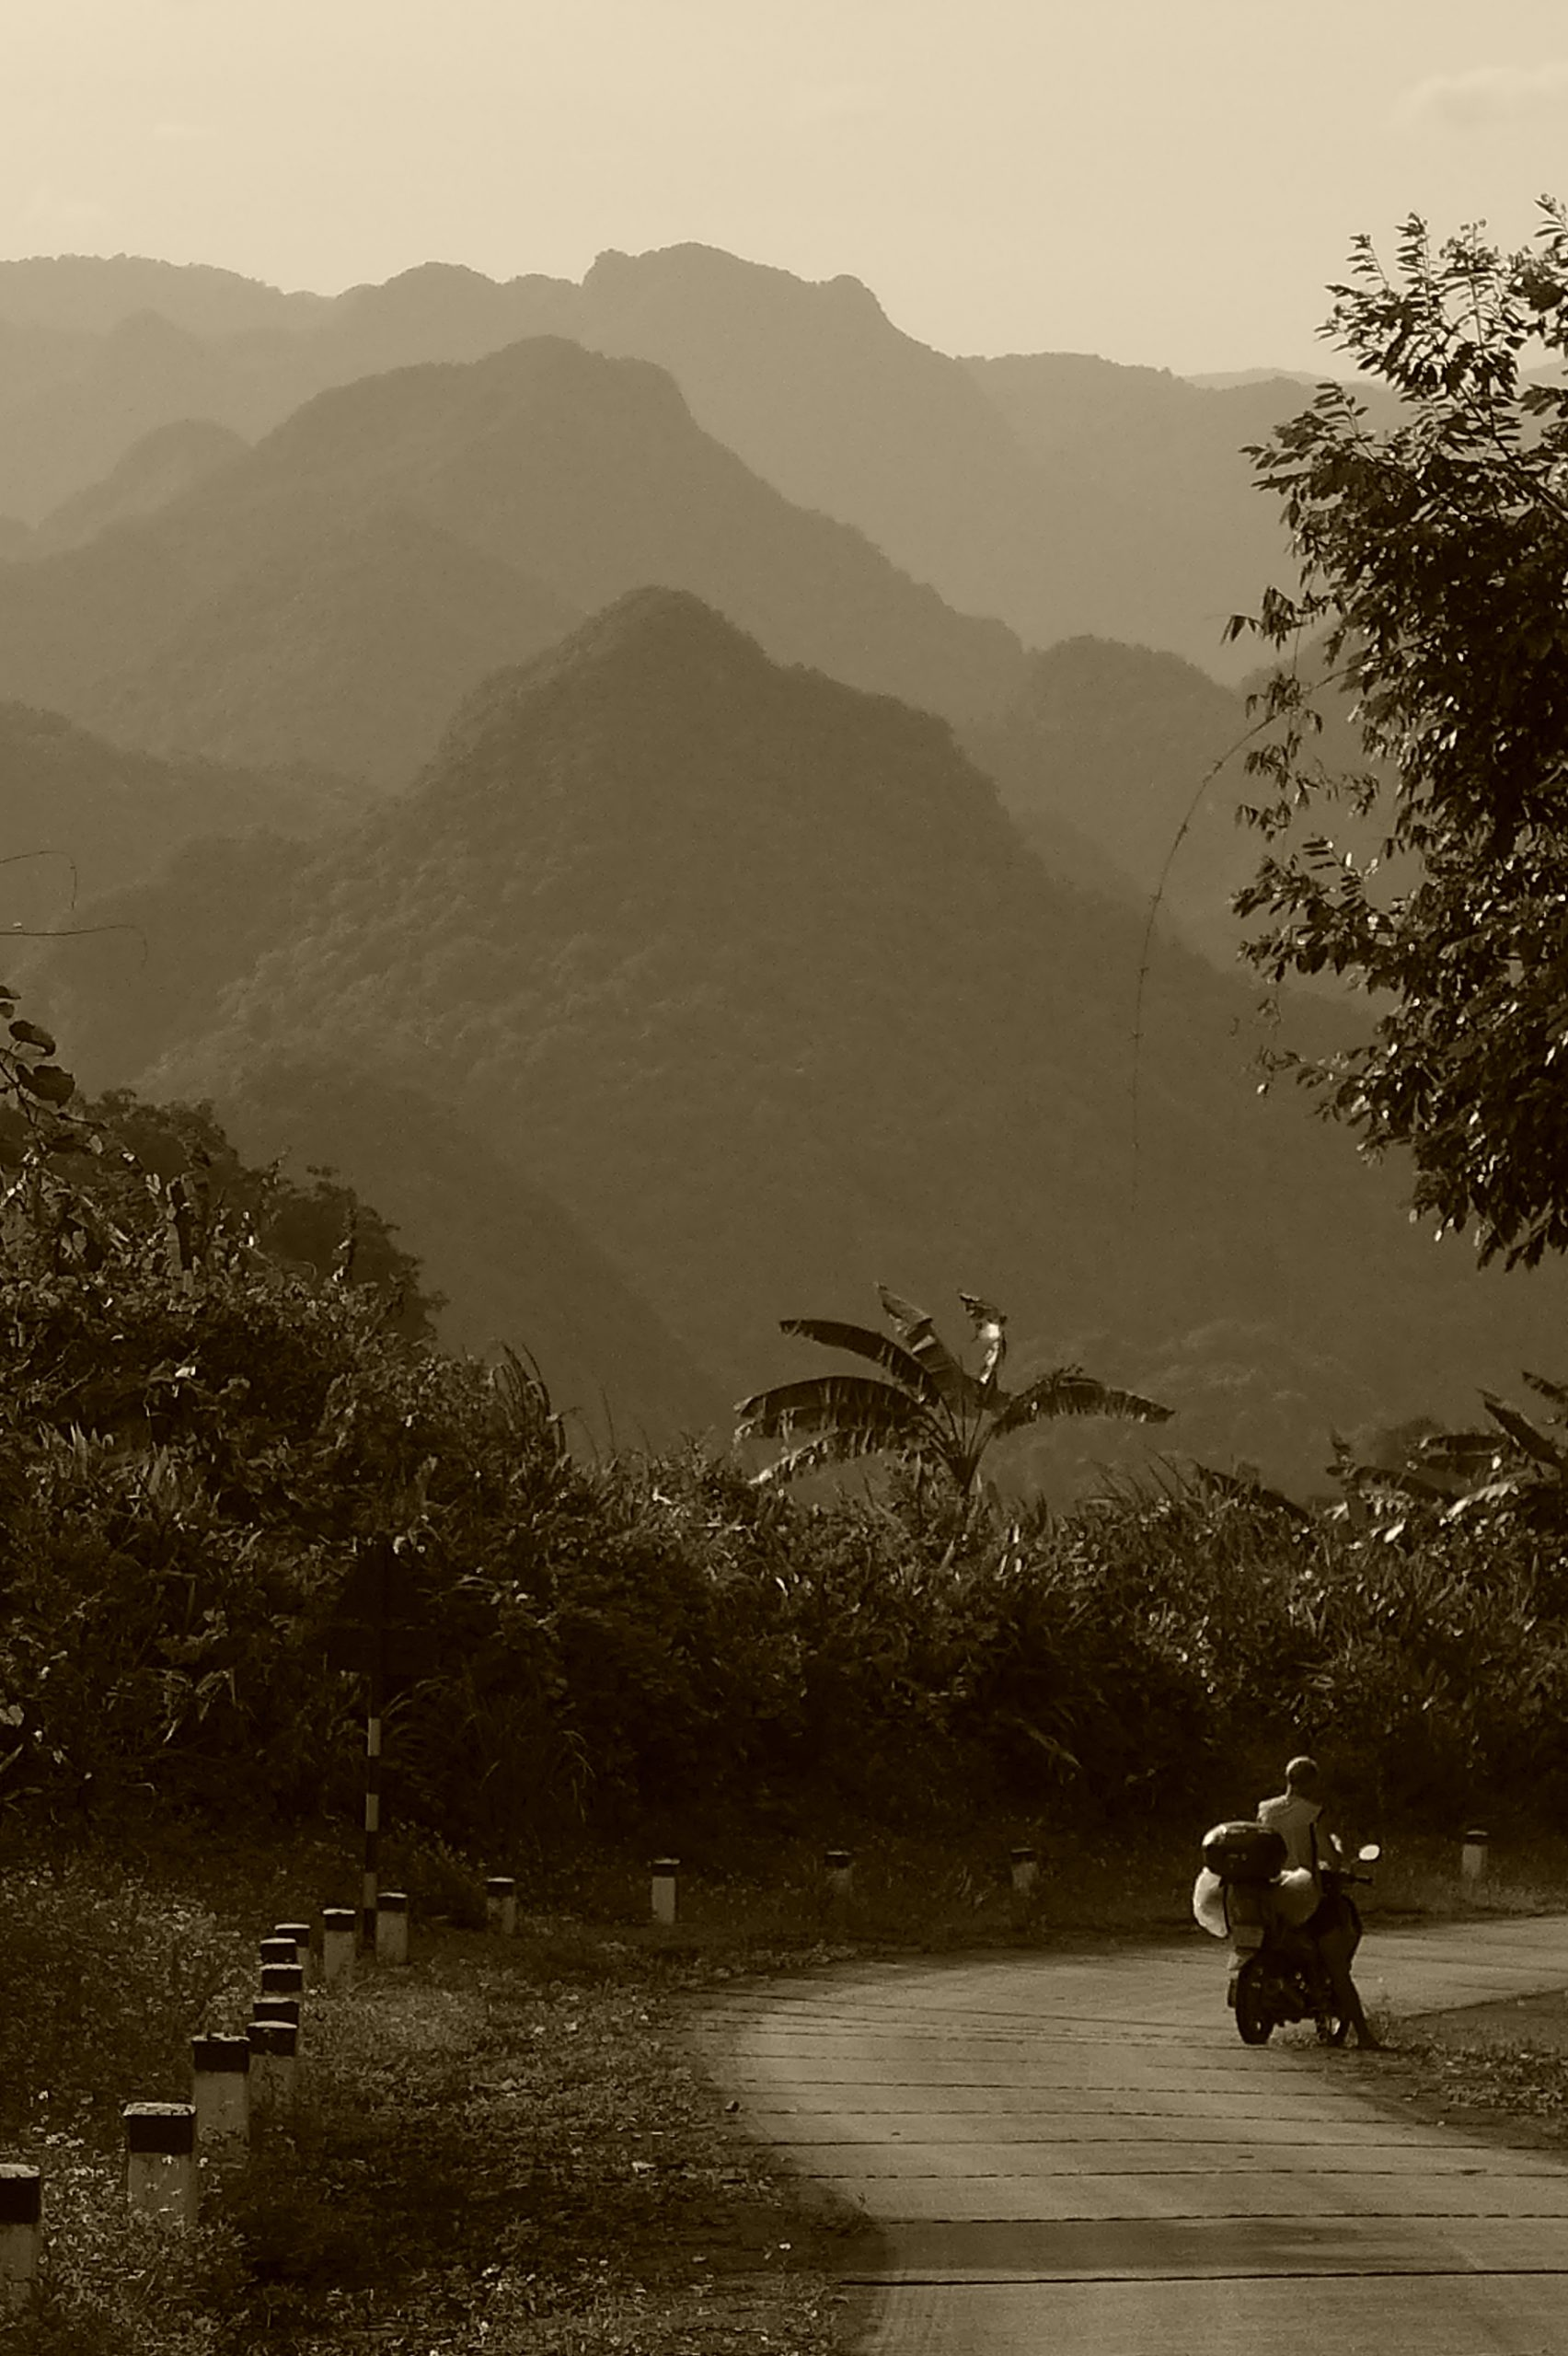 Dream-like: riding the Western Ho Chi Minh Road, Central Vietnam